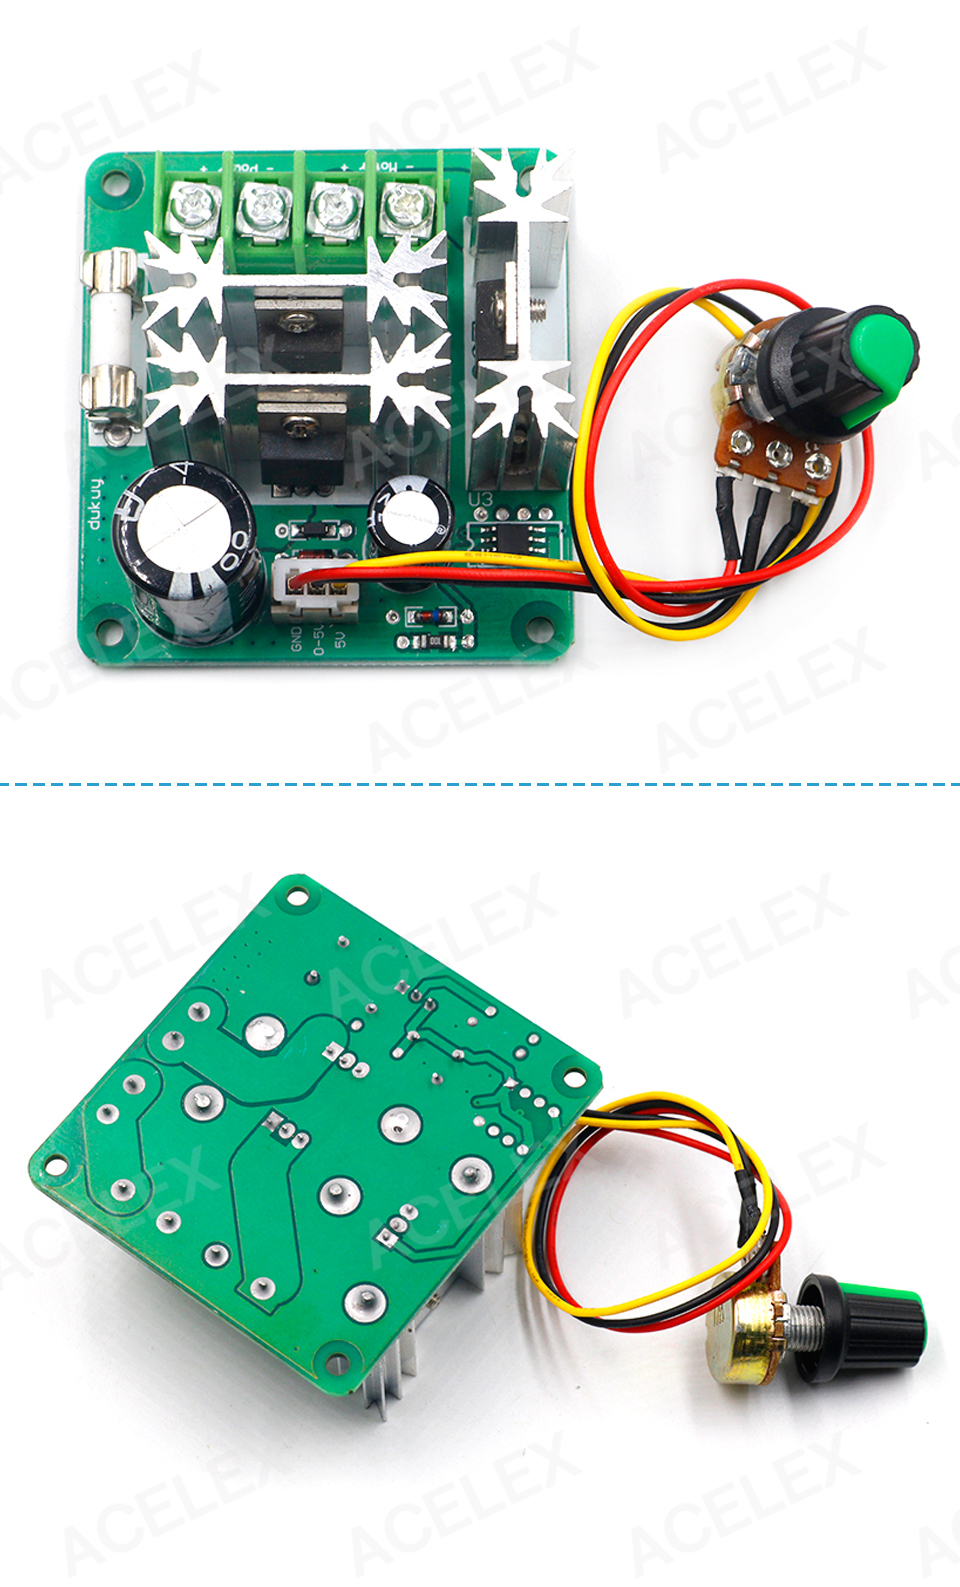 H83669b6efc524bfdba96d673c5eaabdfH - DC 6V-90V 15A DC Motor Speed Controller Stepless Speed Regulation Pulse Width PWM DC 12V 24V 36V 48V 1000W